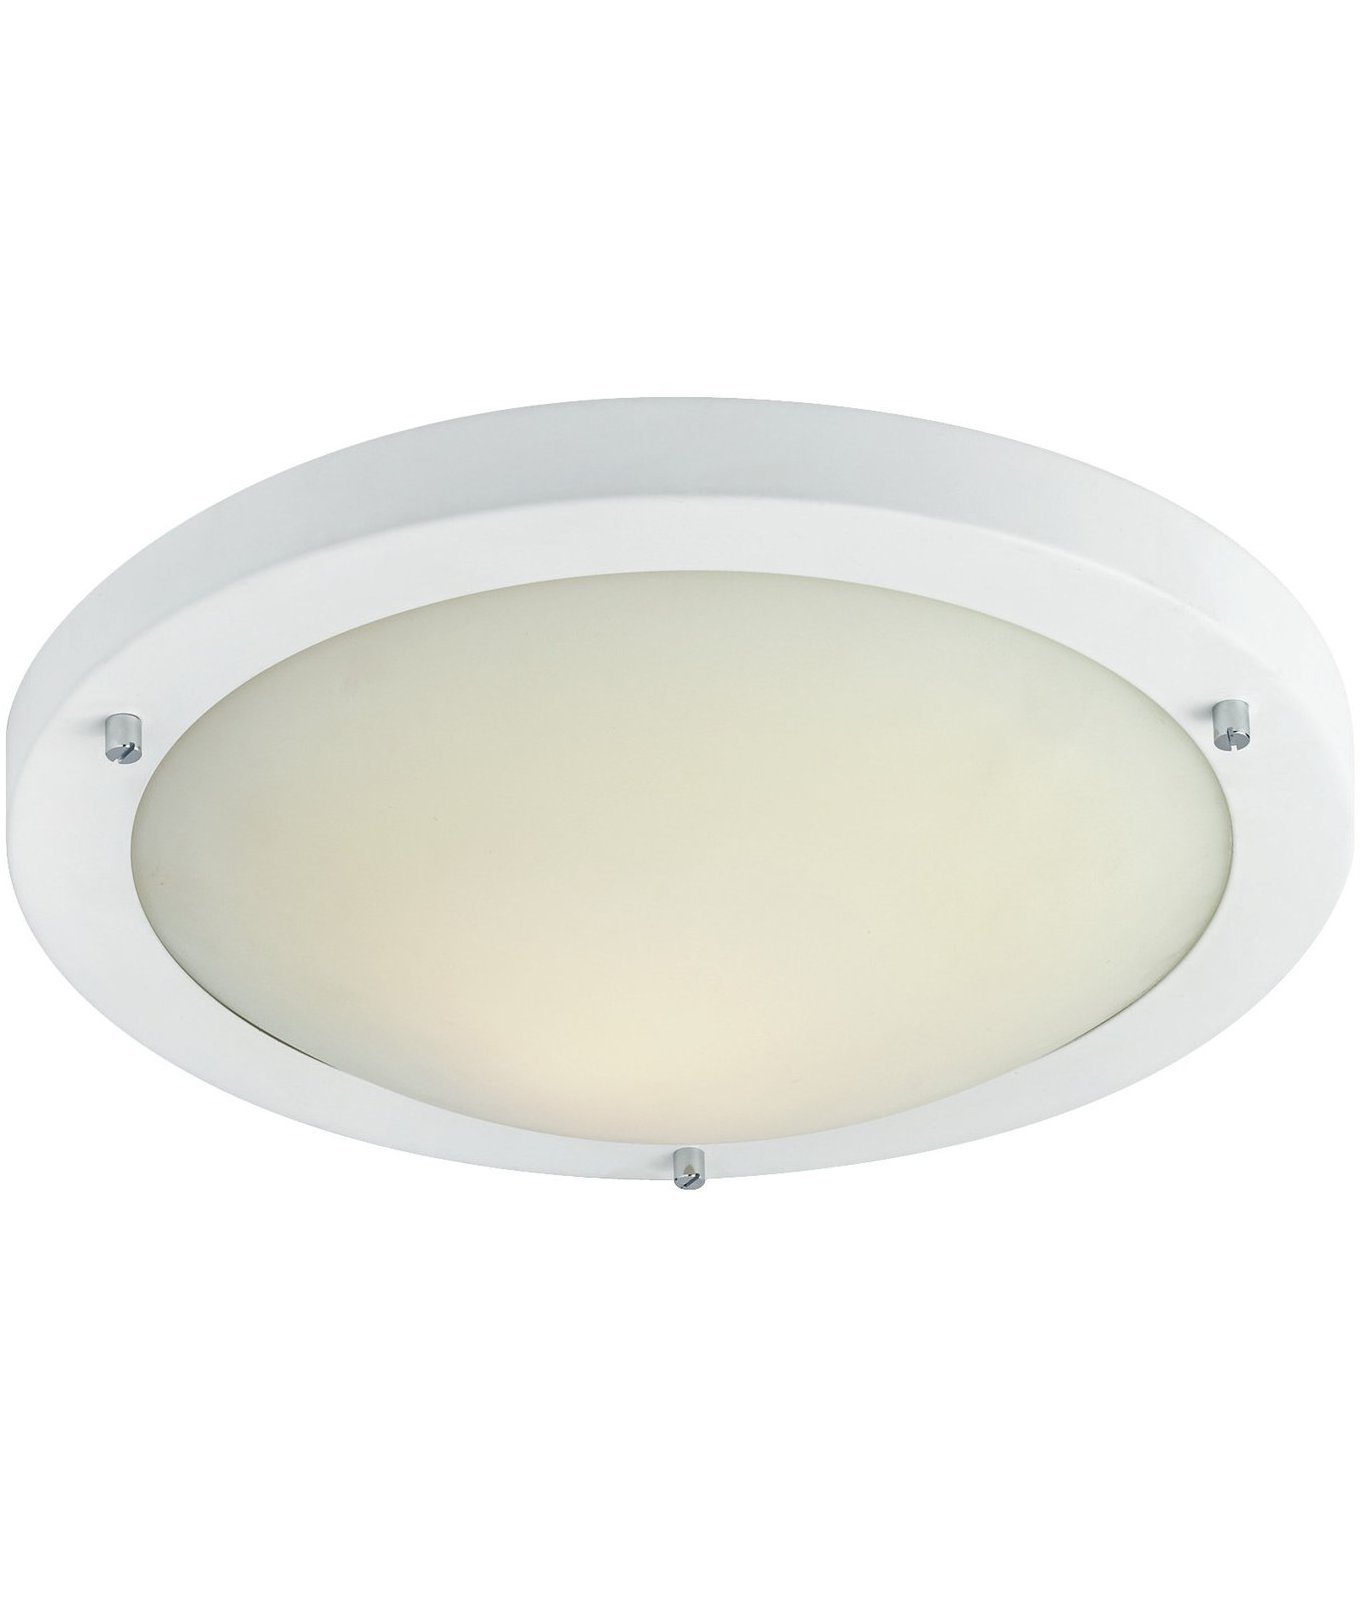 Types Of Ceiling Lights: Simple Flush Fitting With Choice Of Lamp Types